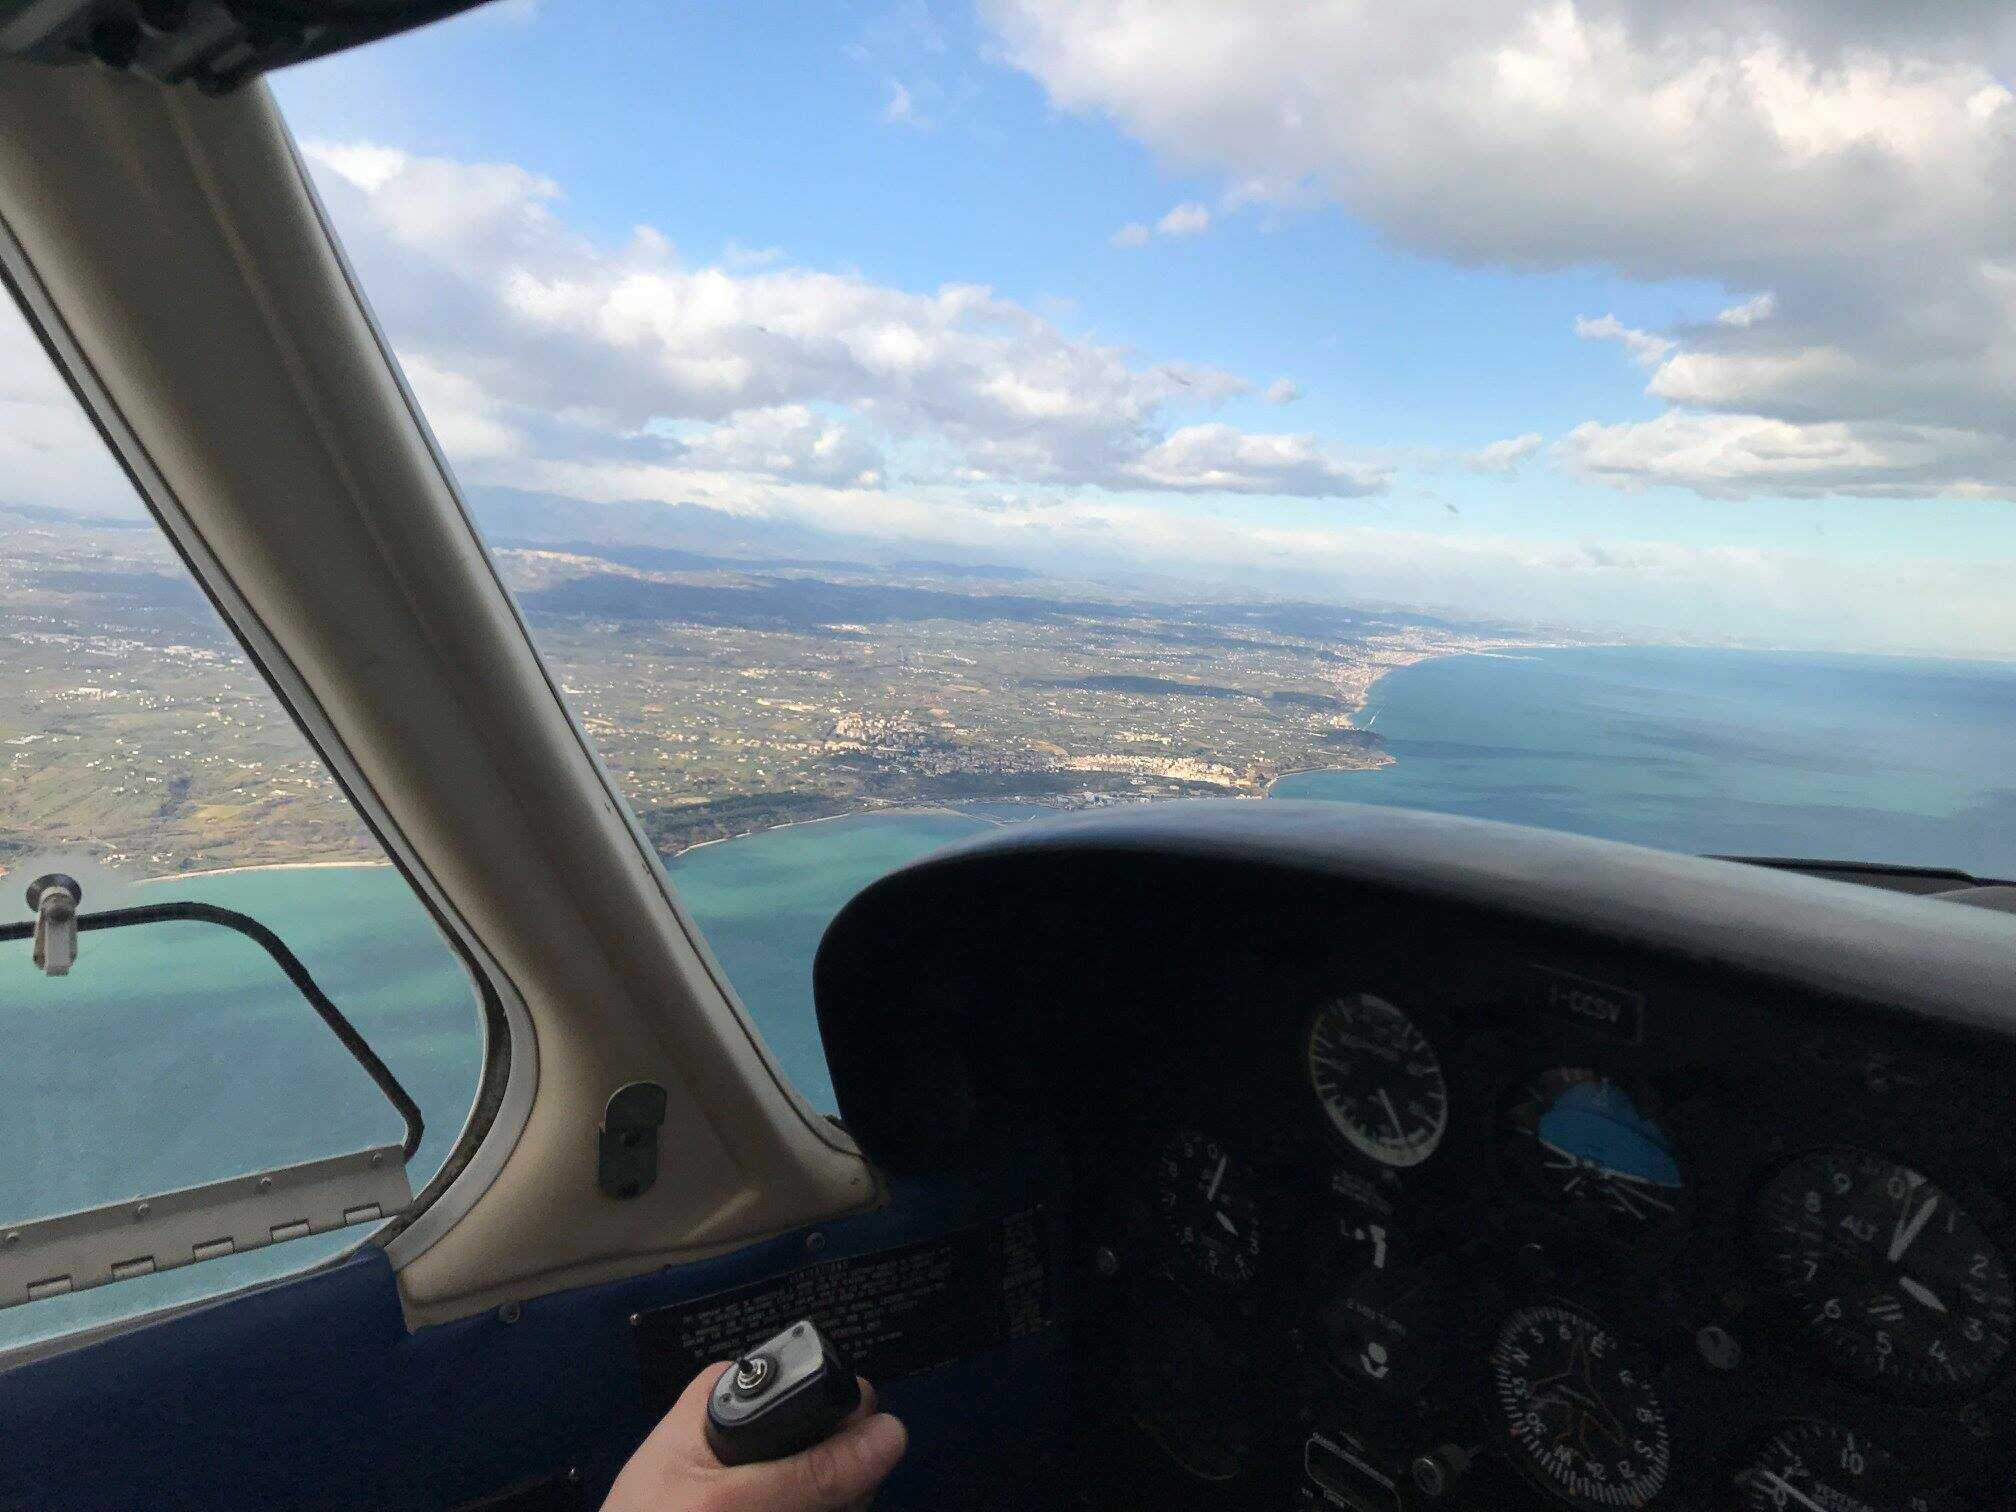 flyvning-over-pescara